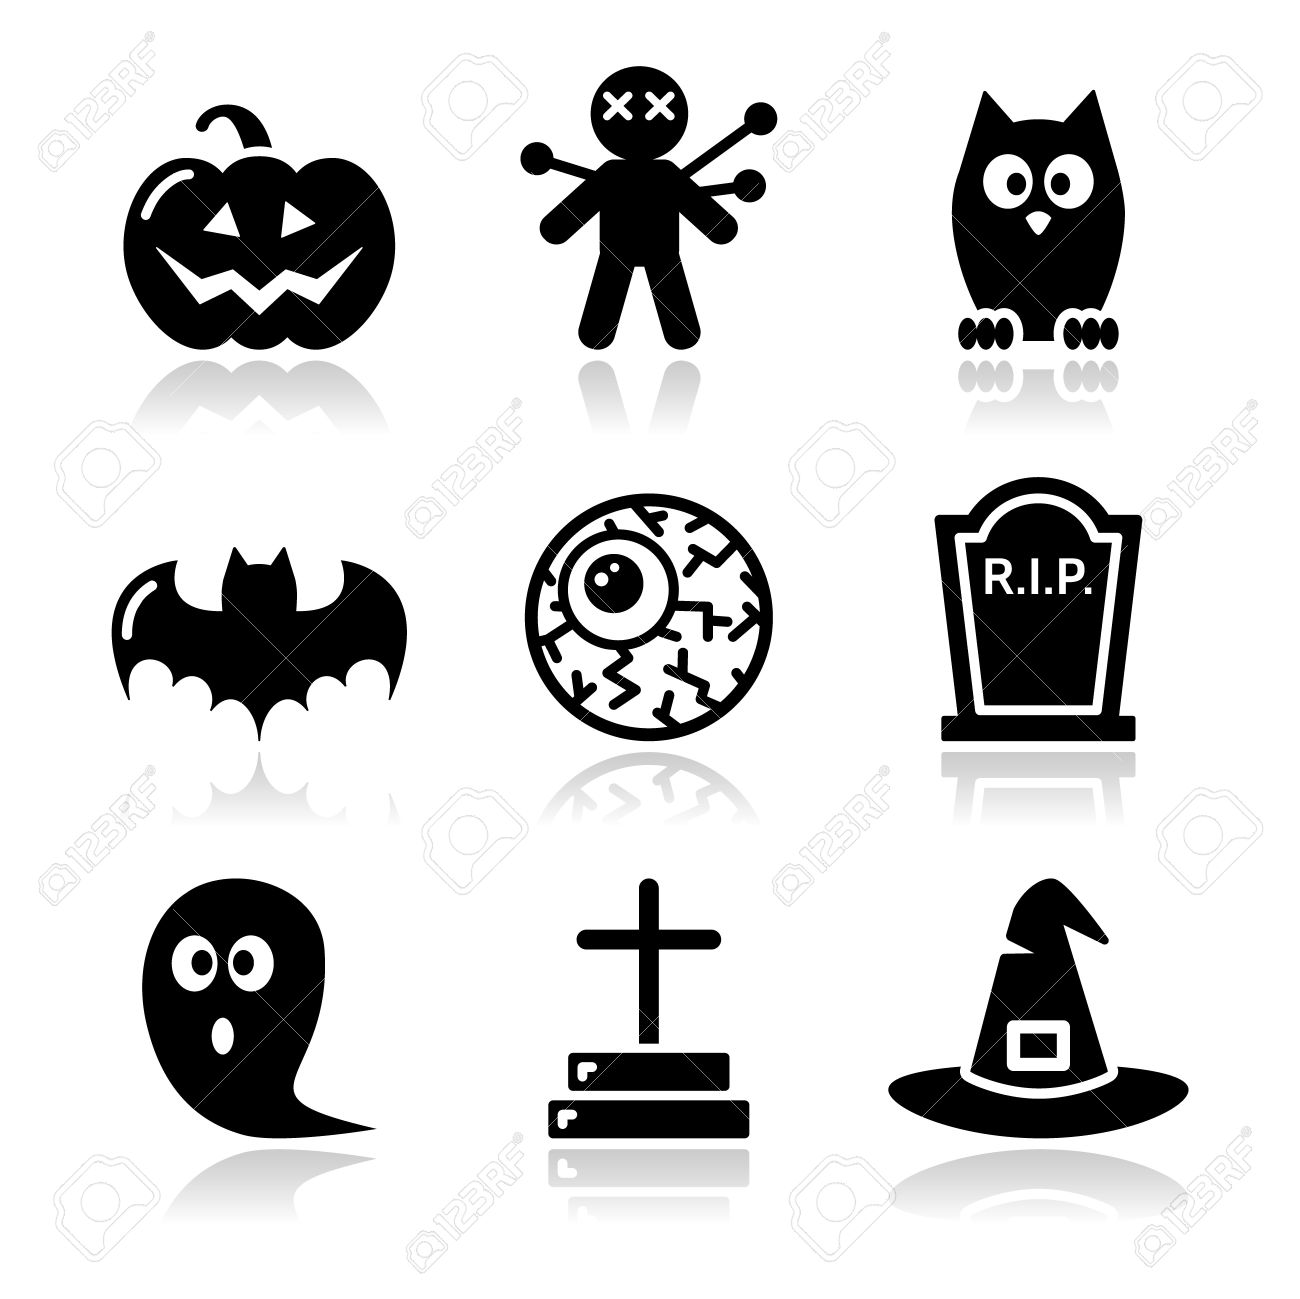 Halloween black icons set - pumpkin, witch, ghost Stock Vector - 15498122